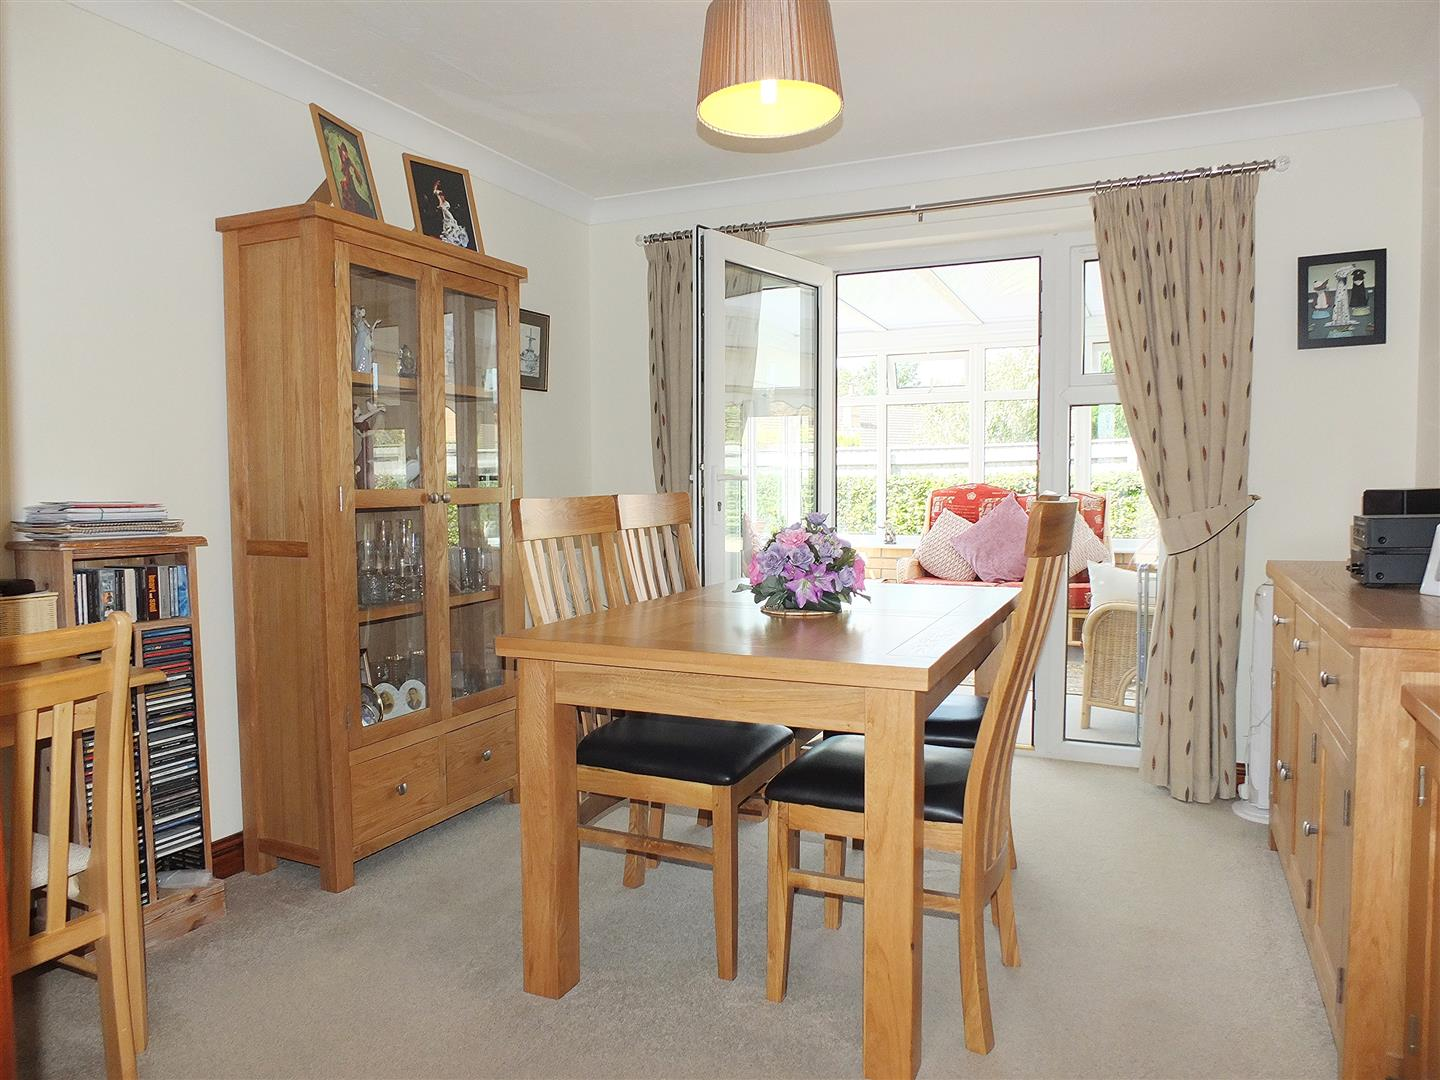 3 bed detached bungalow for sale in Long Sutton Spalding, PE12 9FT  - Property Image 6